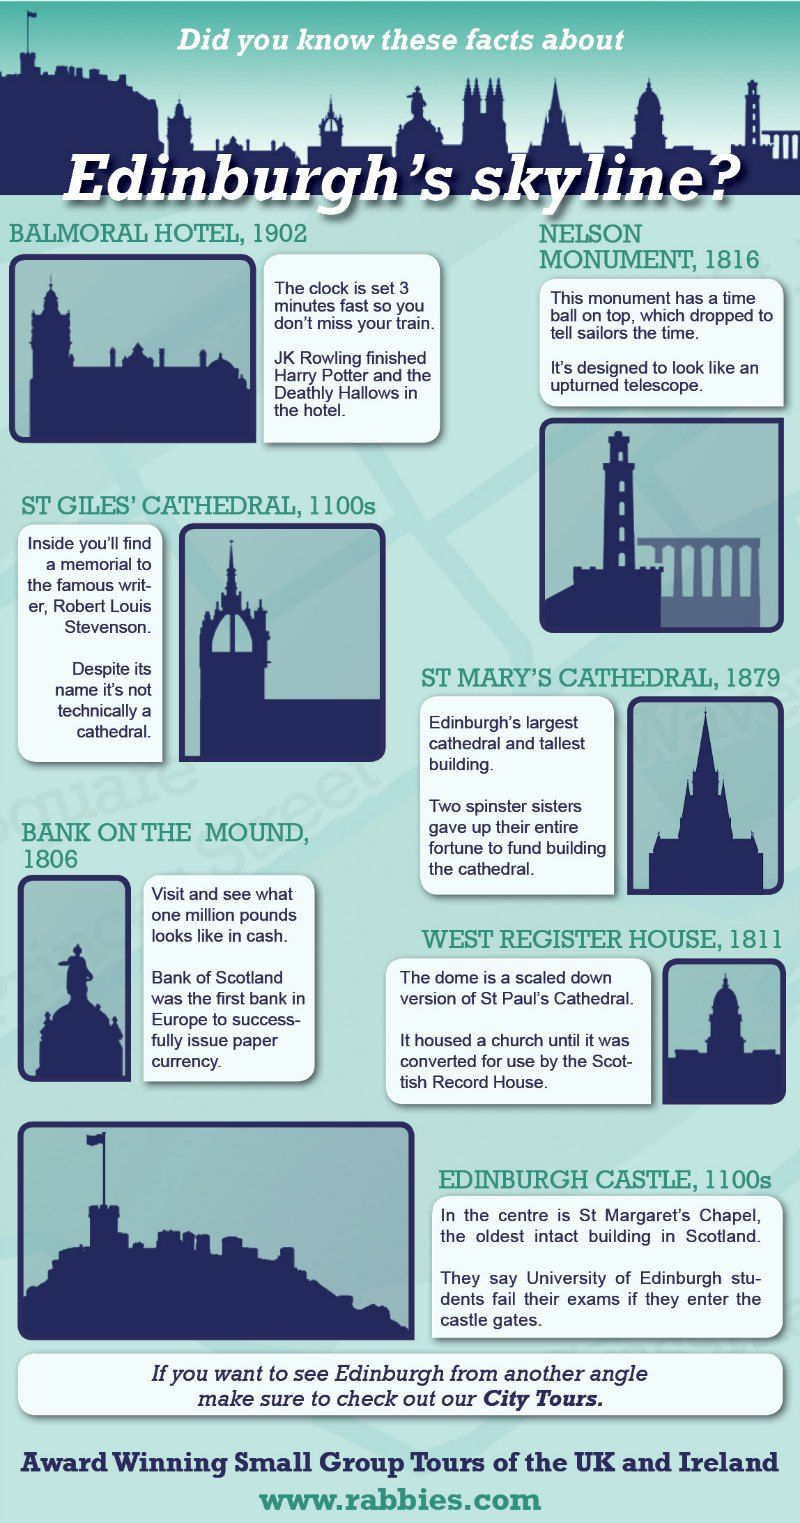 Did You Know These Facts About Edinburgh's Skyline